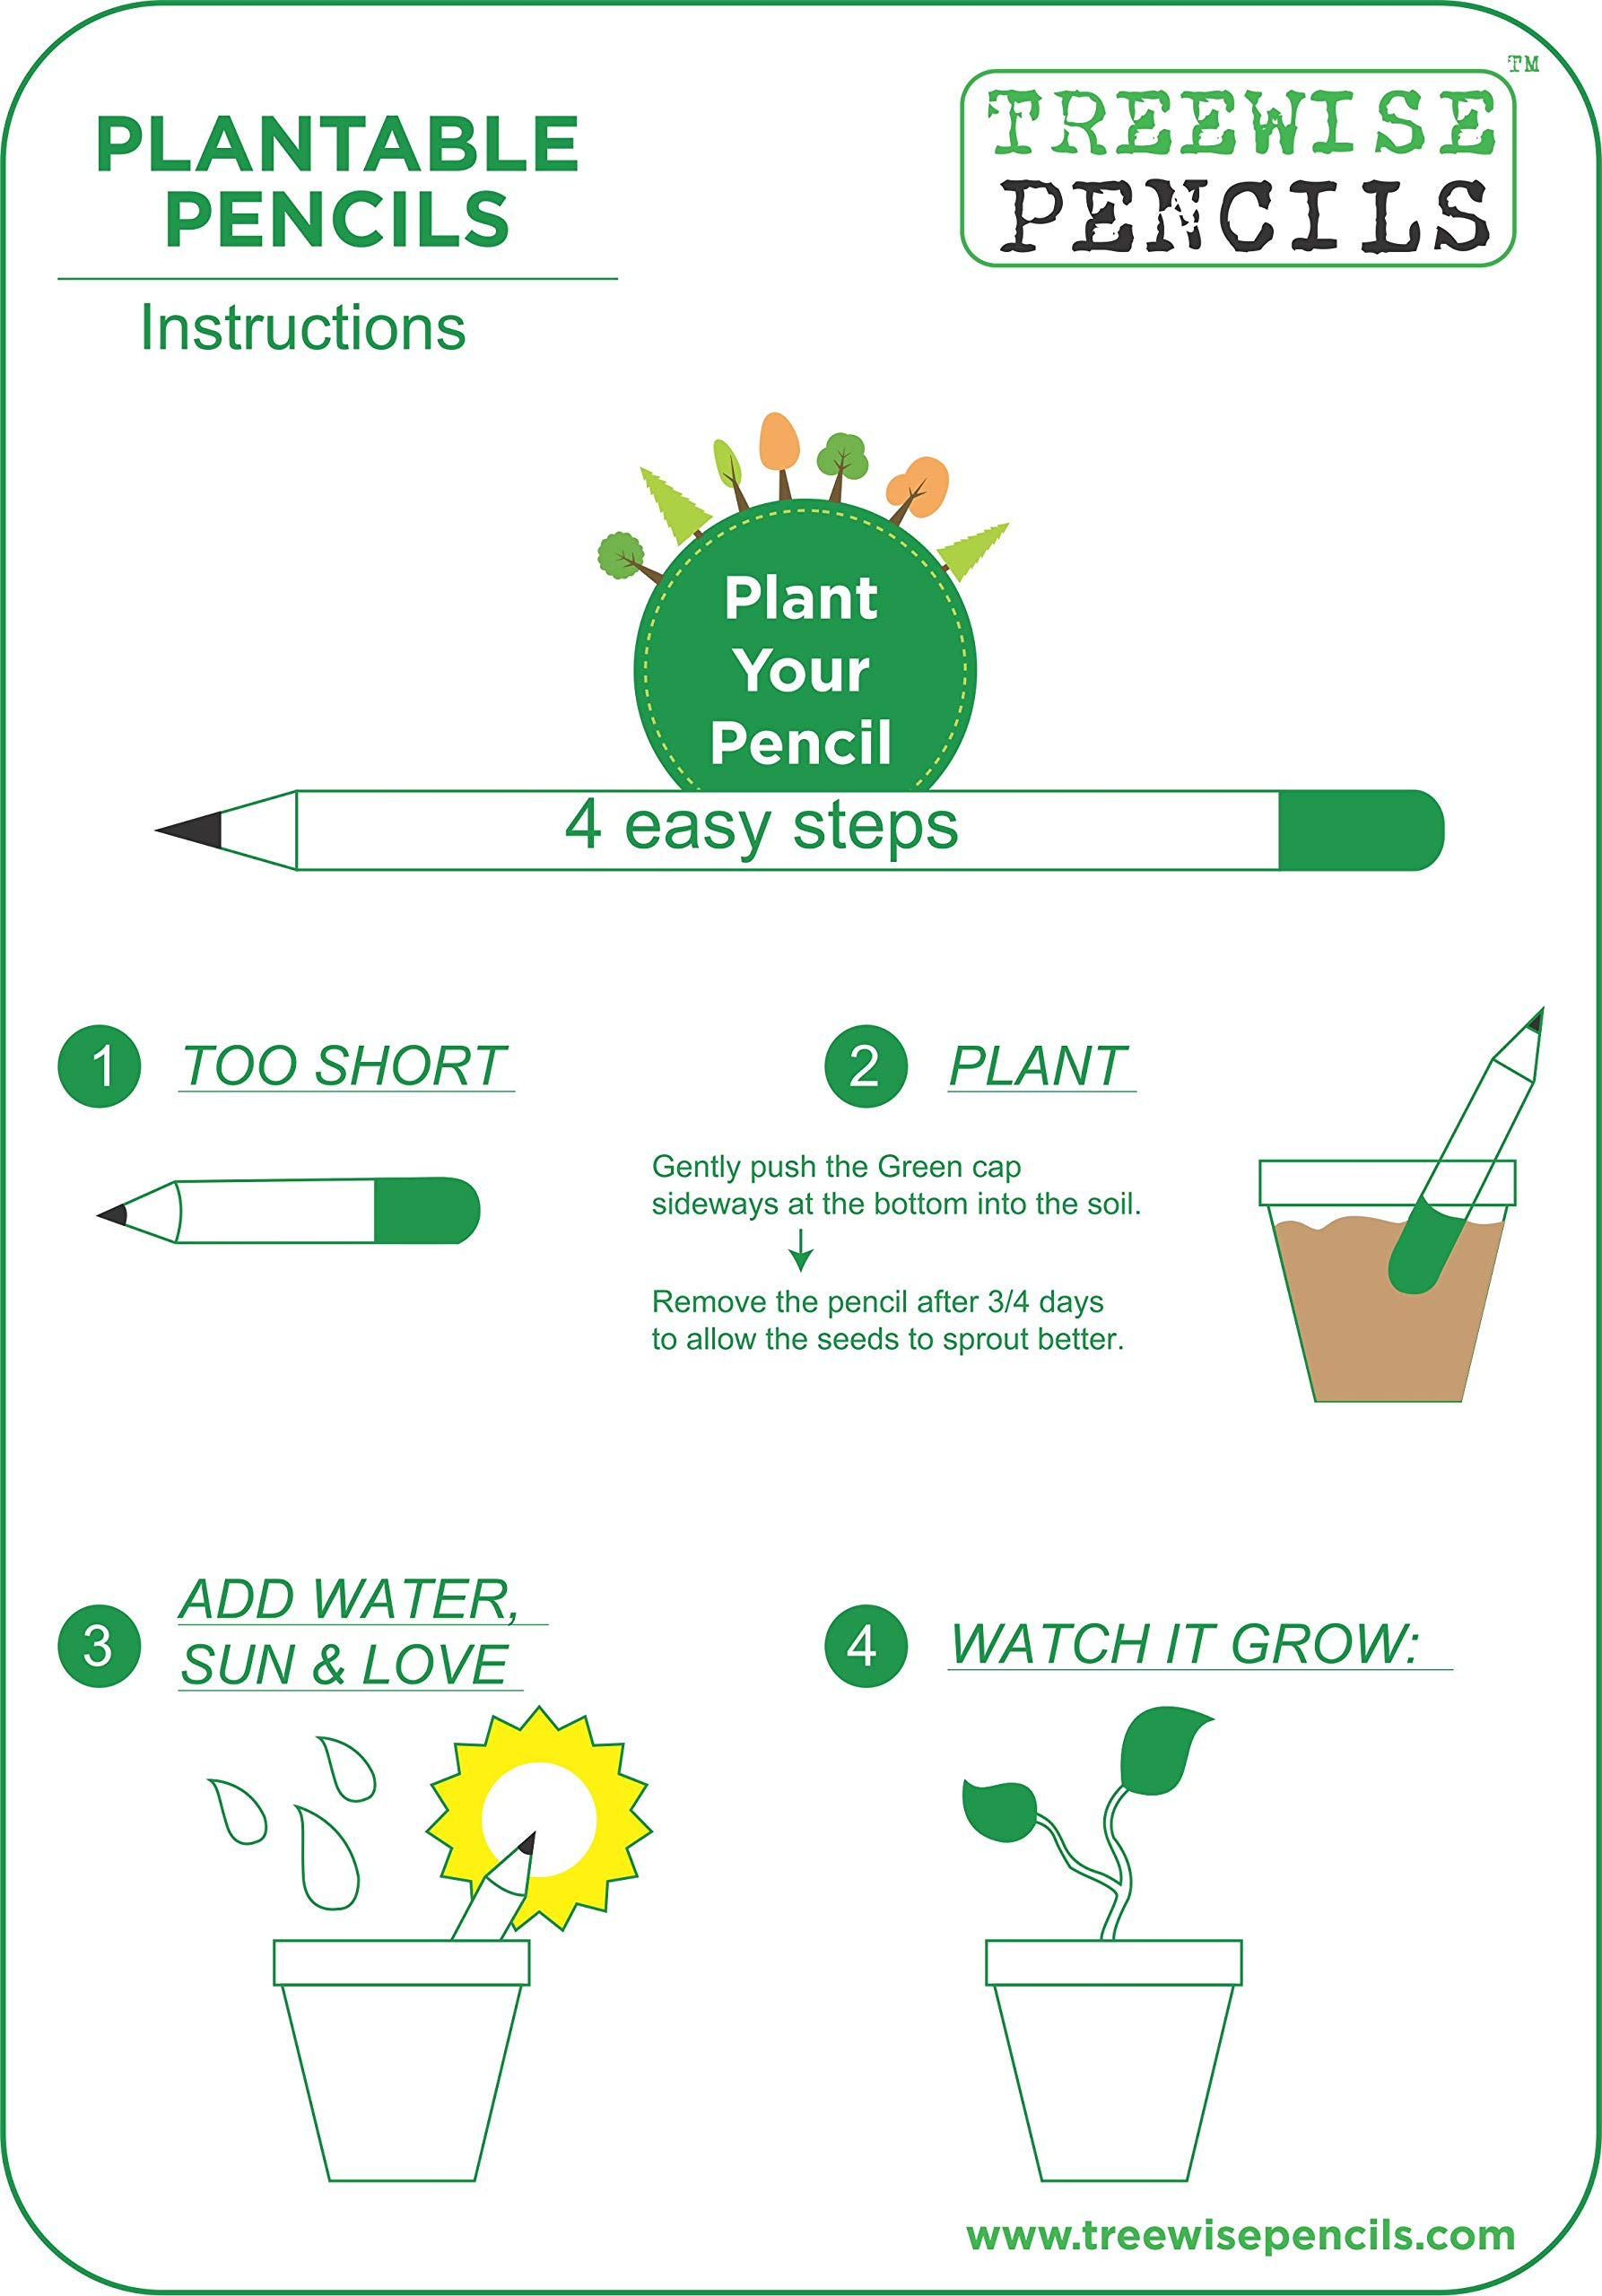 WOOD FREE PLANTABLE PENCIL HB#2 EXTRA DARK 36 Pencils + 5 Silicon Gripers FREE l 100% Recycled Newspapers l 100% Eco Friendly l 5 Assorted Seeds- TOMATO   FENUGREEK   CORIANDER   CHILI   MUSTRAD by SAVE GREEN WORLD (Image #6)